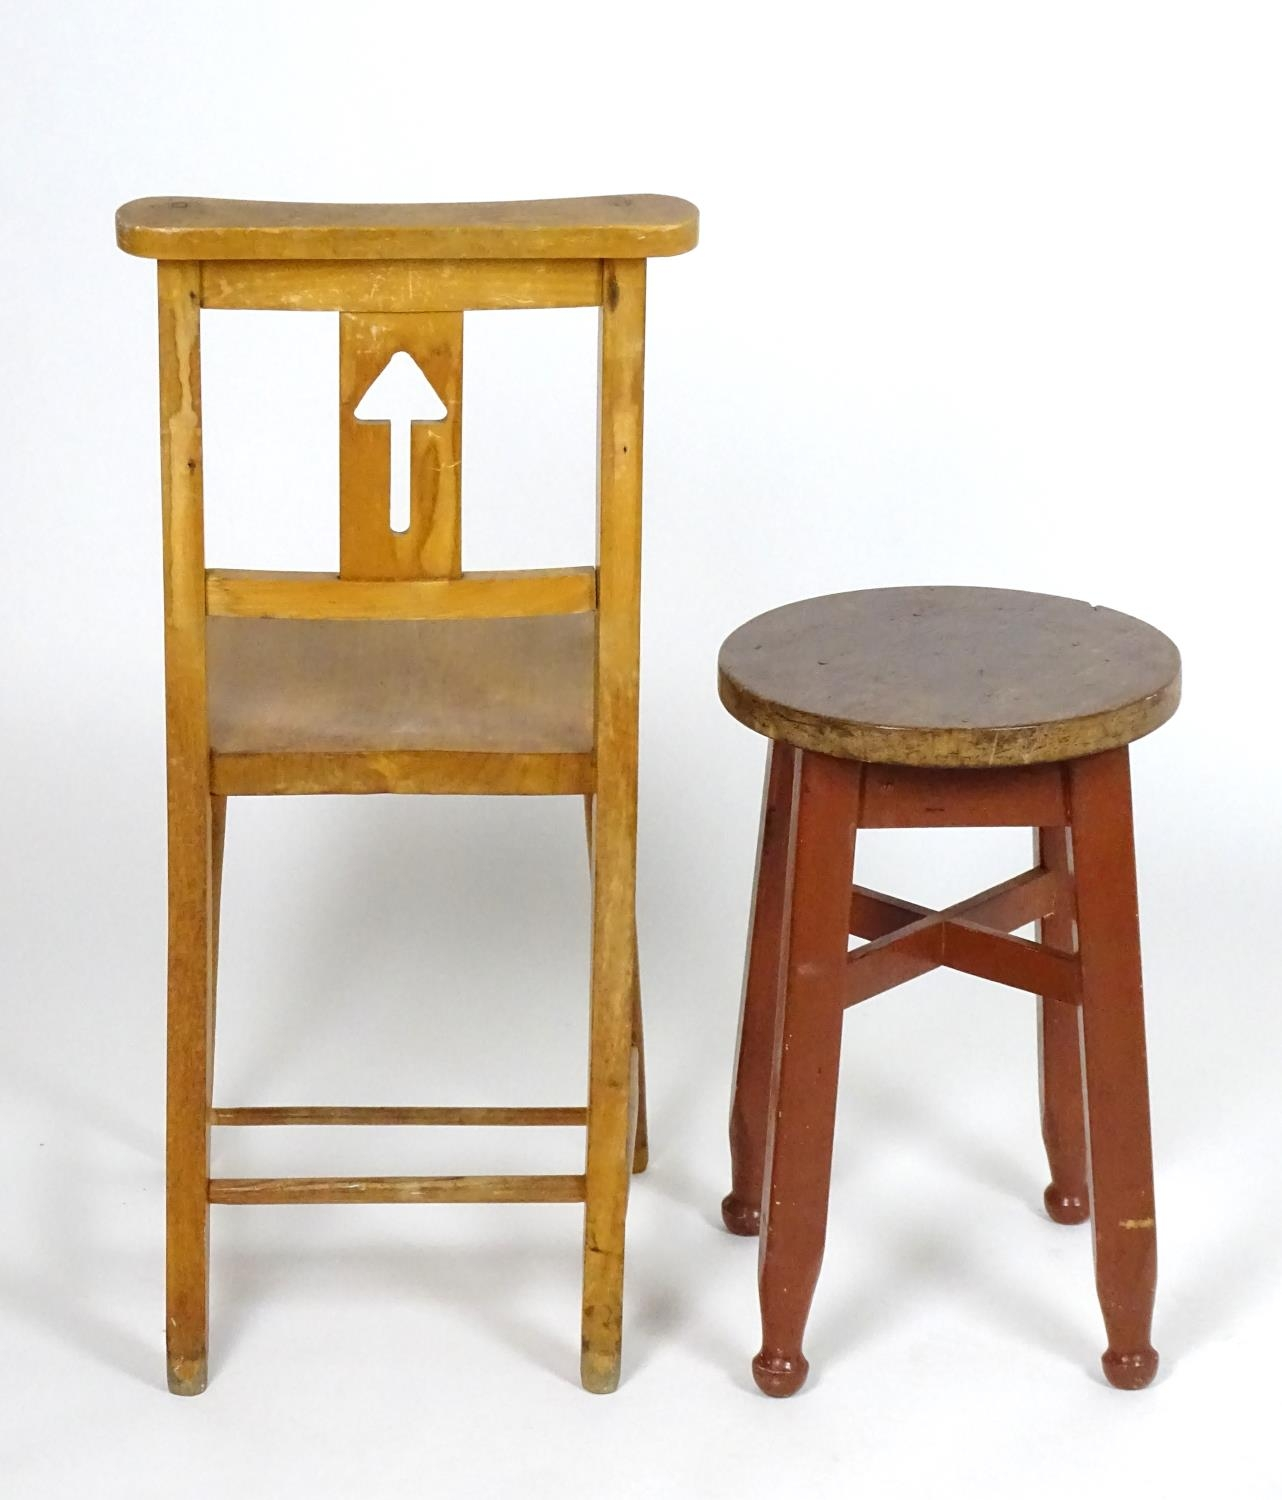 An early 20thC pine stool together with a chair having a shaped top rail and pierced back splat. - Image 3 of 4